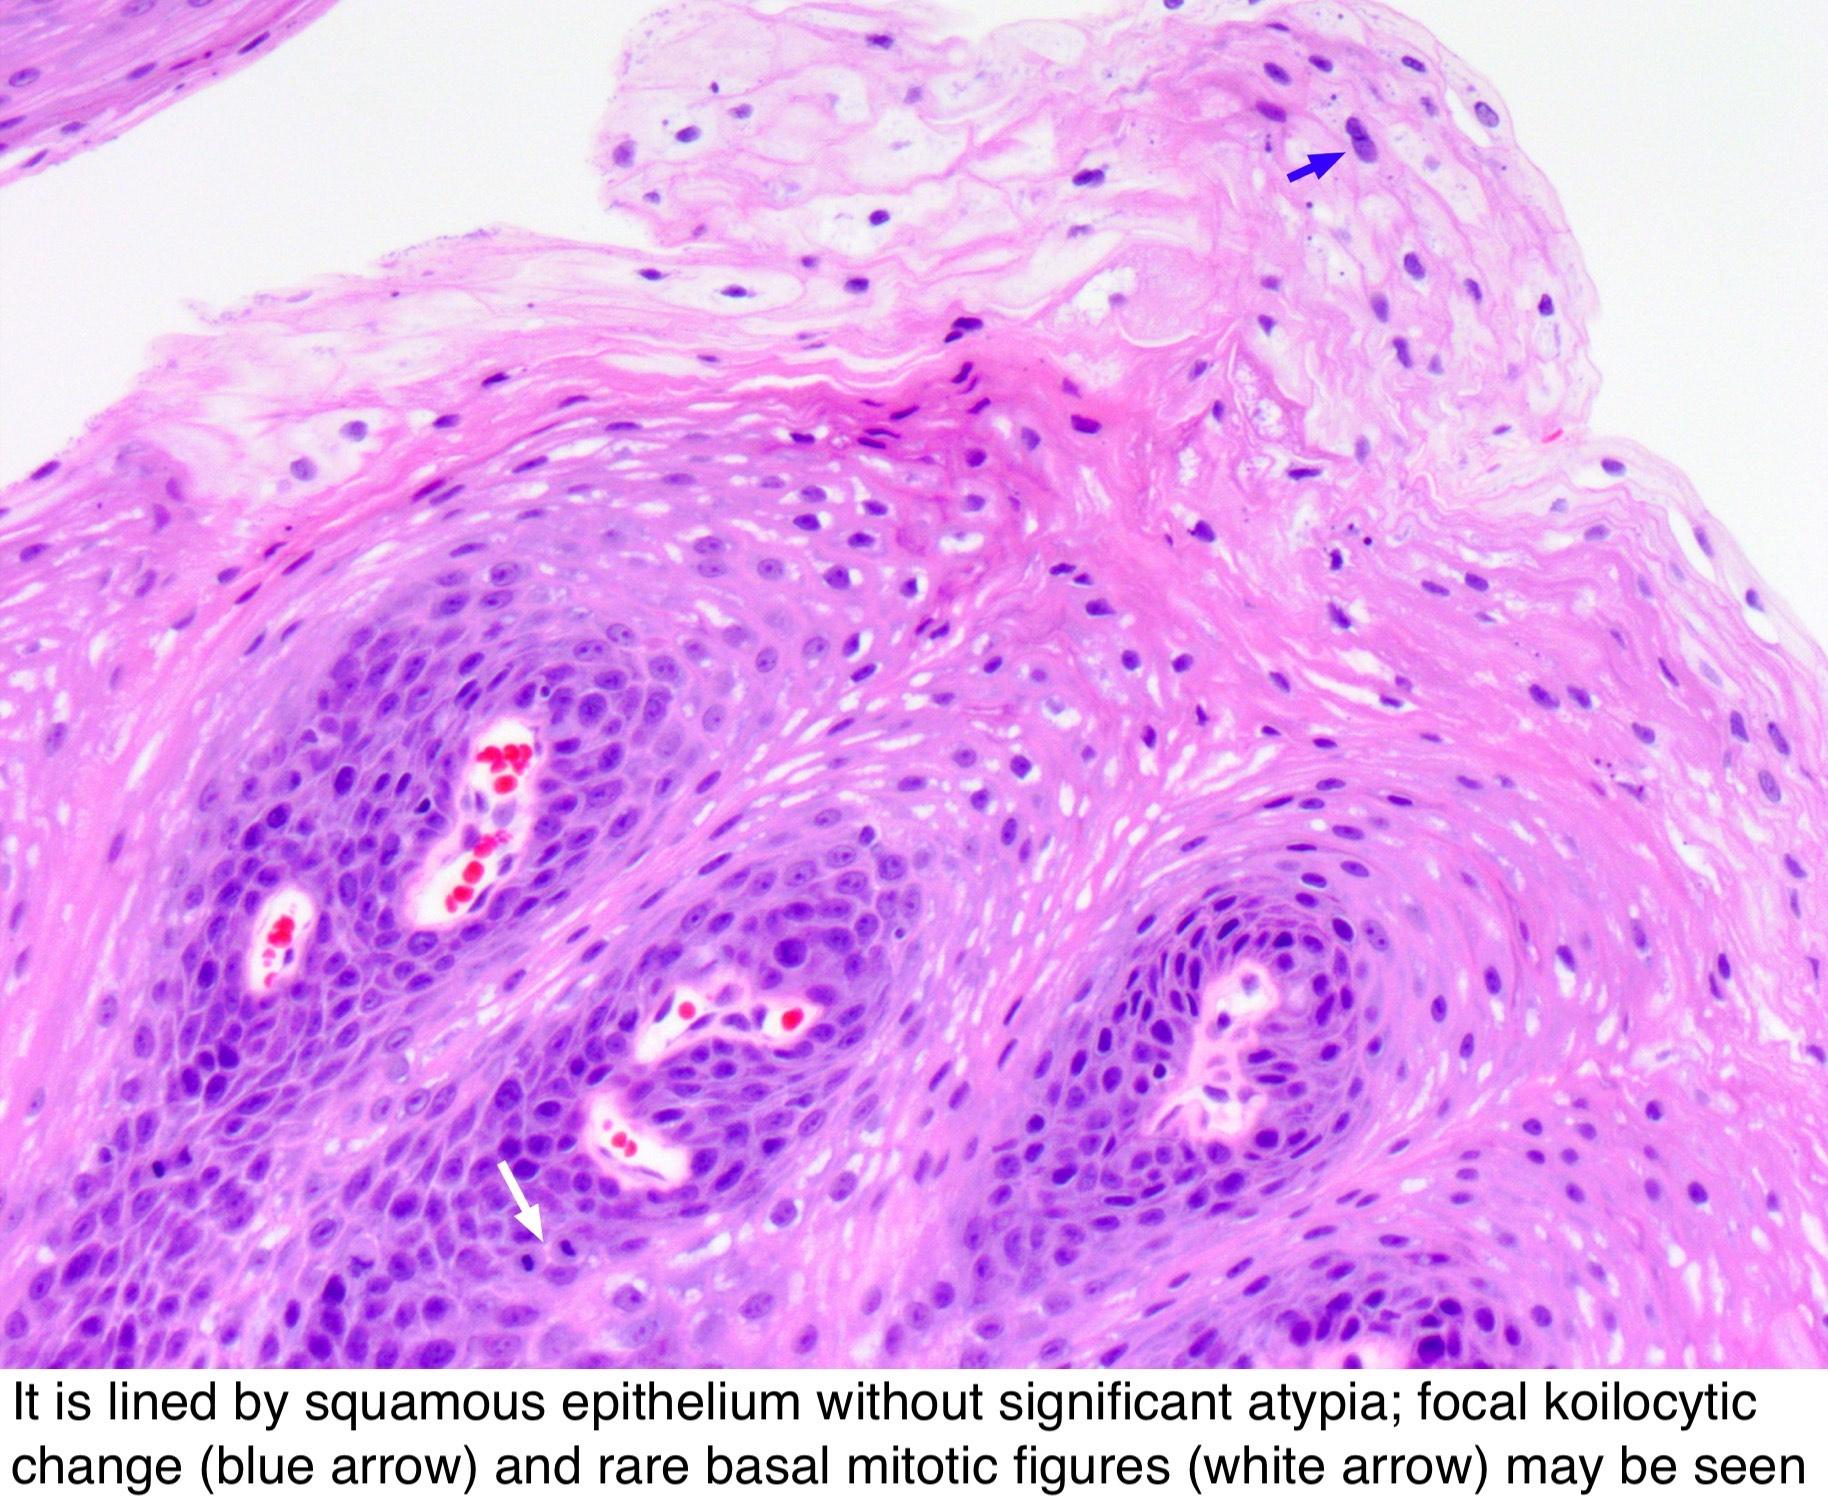 sintomas de hpv en ano hpv-positive squamous cell carcinoma of tonsil